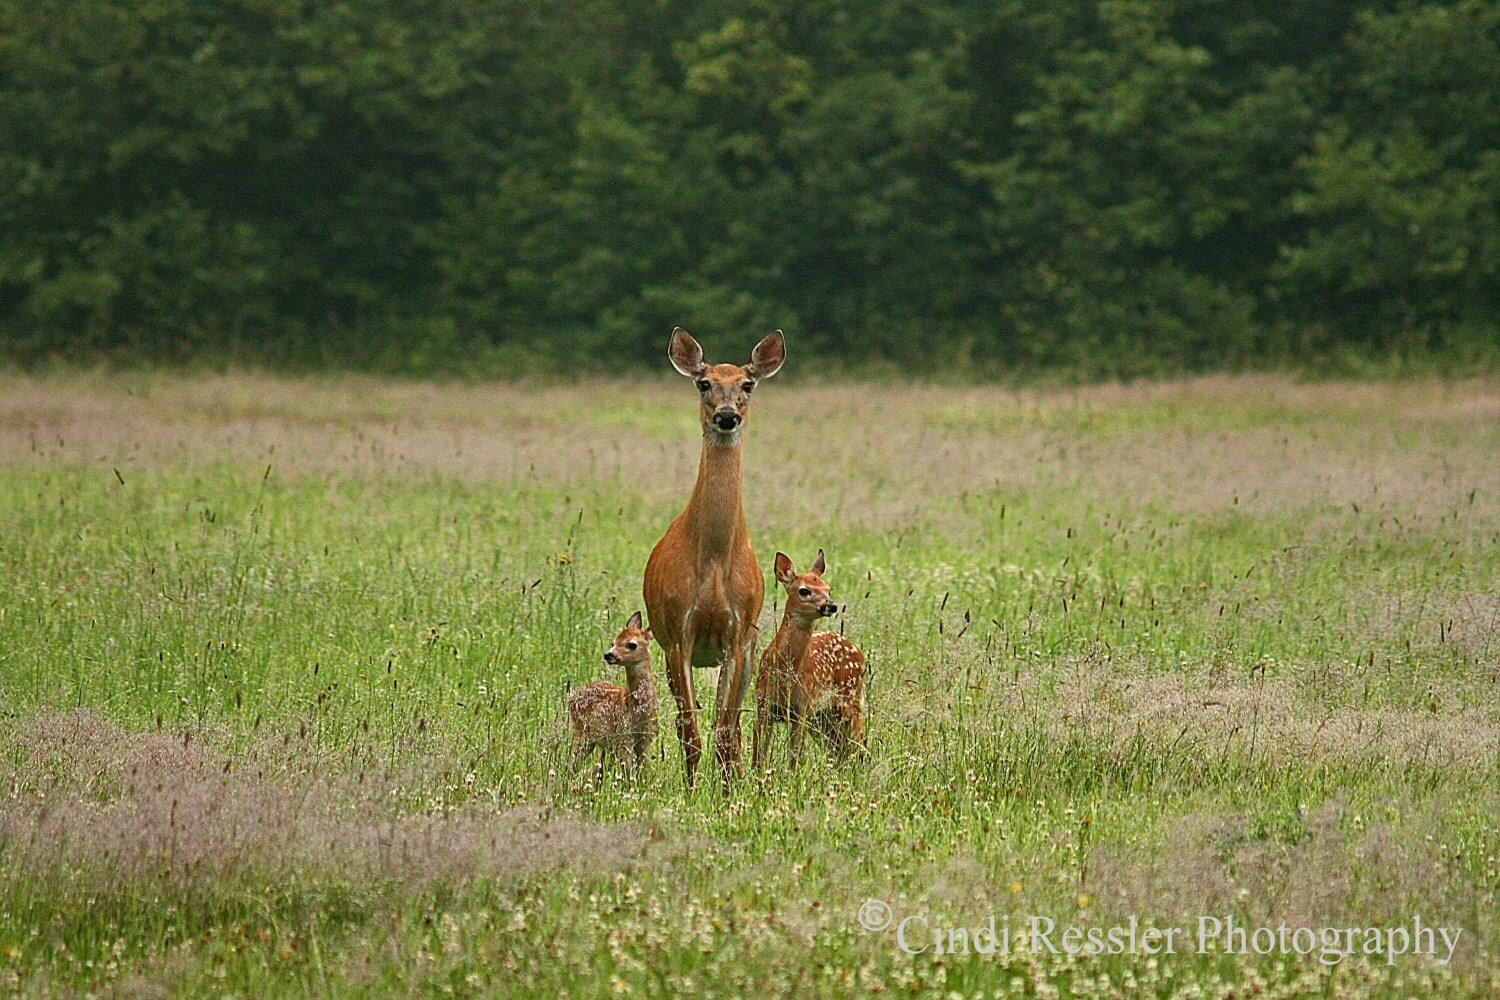 Doe with Twin Fawns, 8x12 FIne Art Photography, Nature Photography - CindiRessler